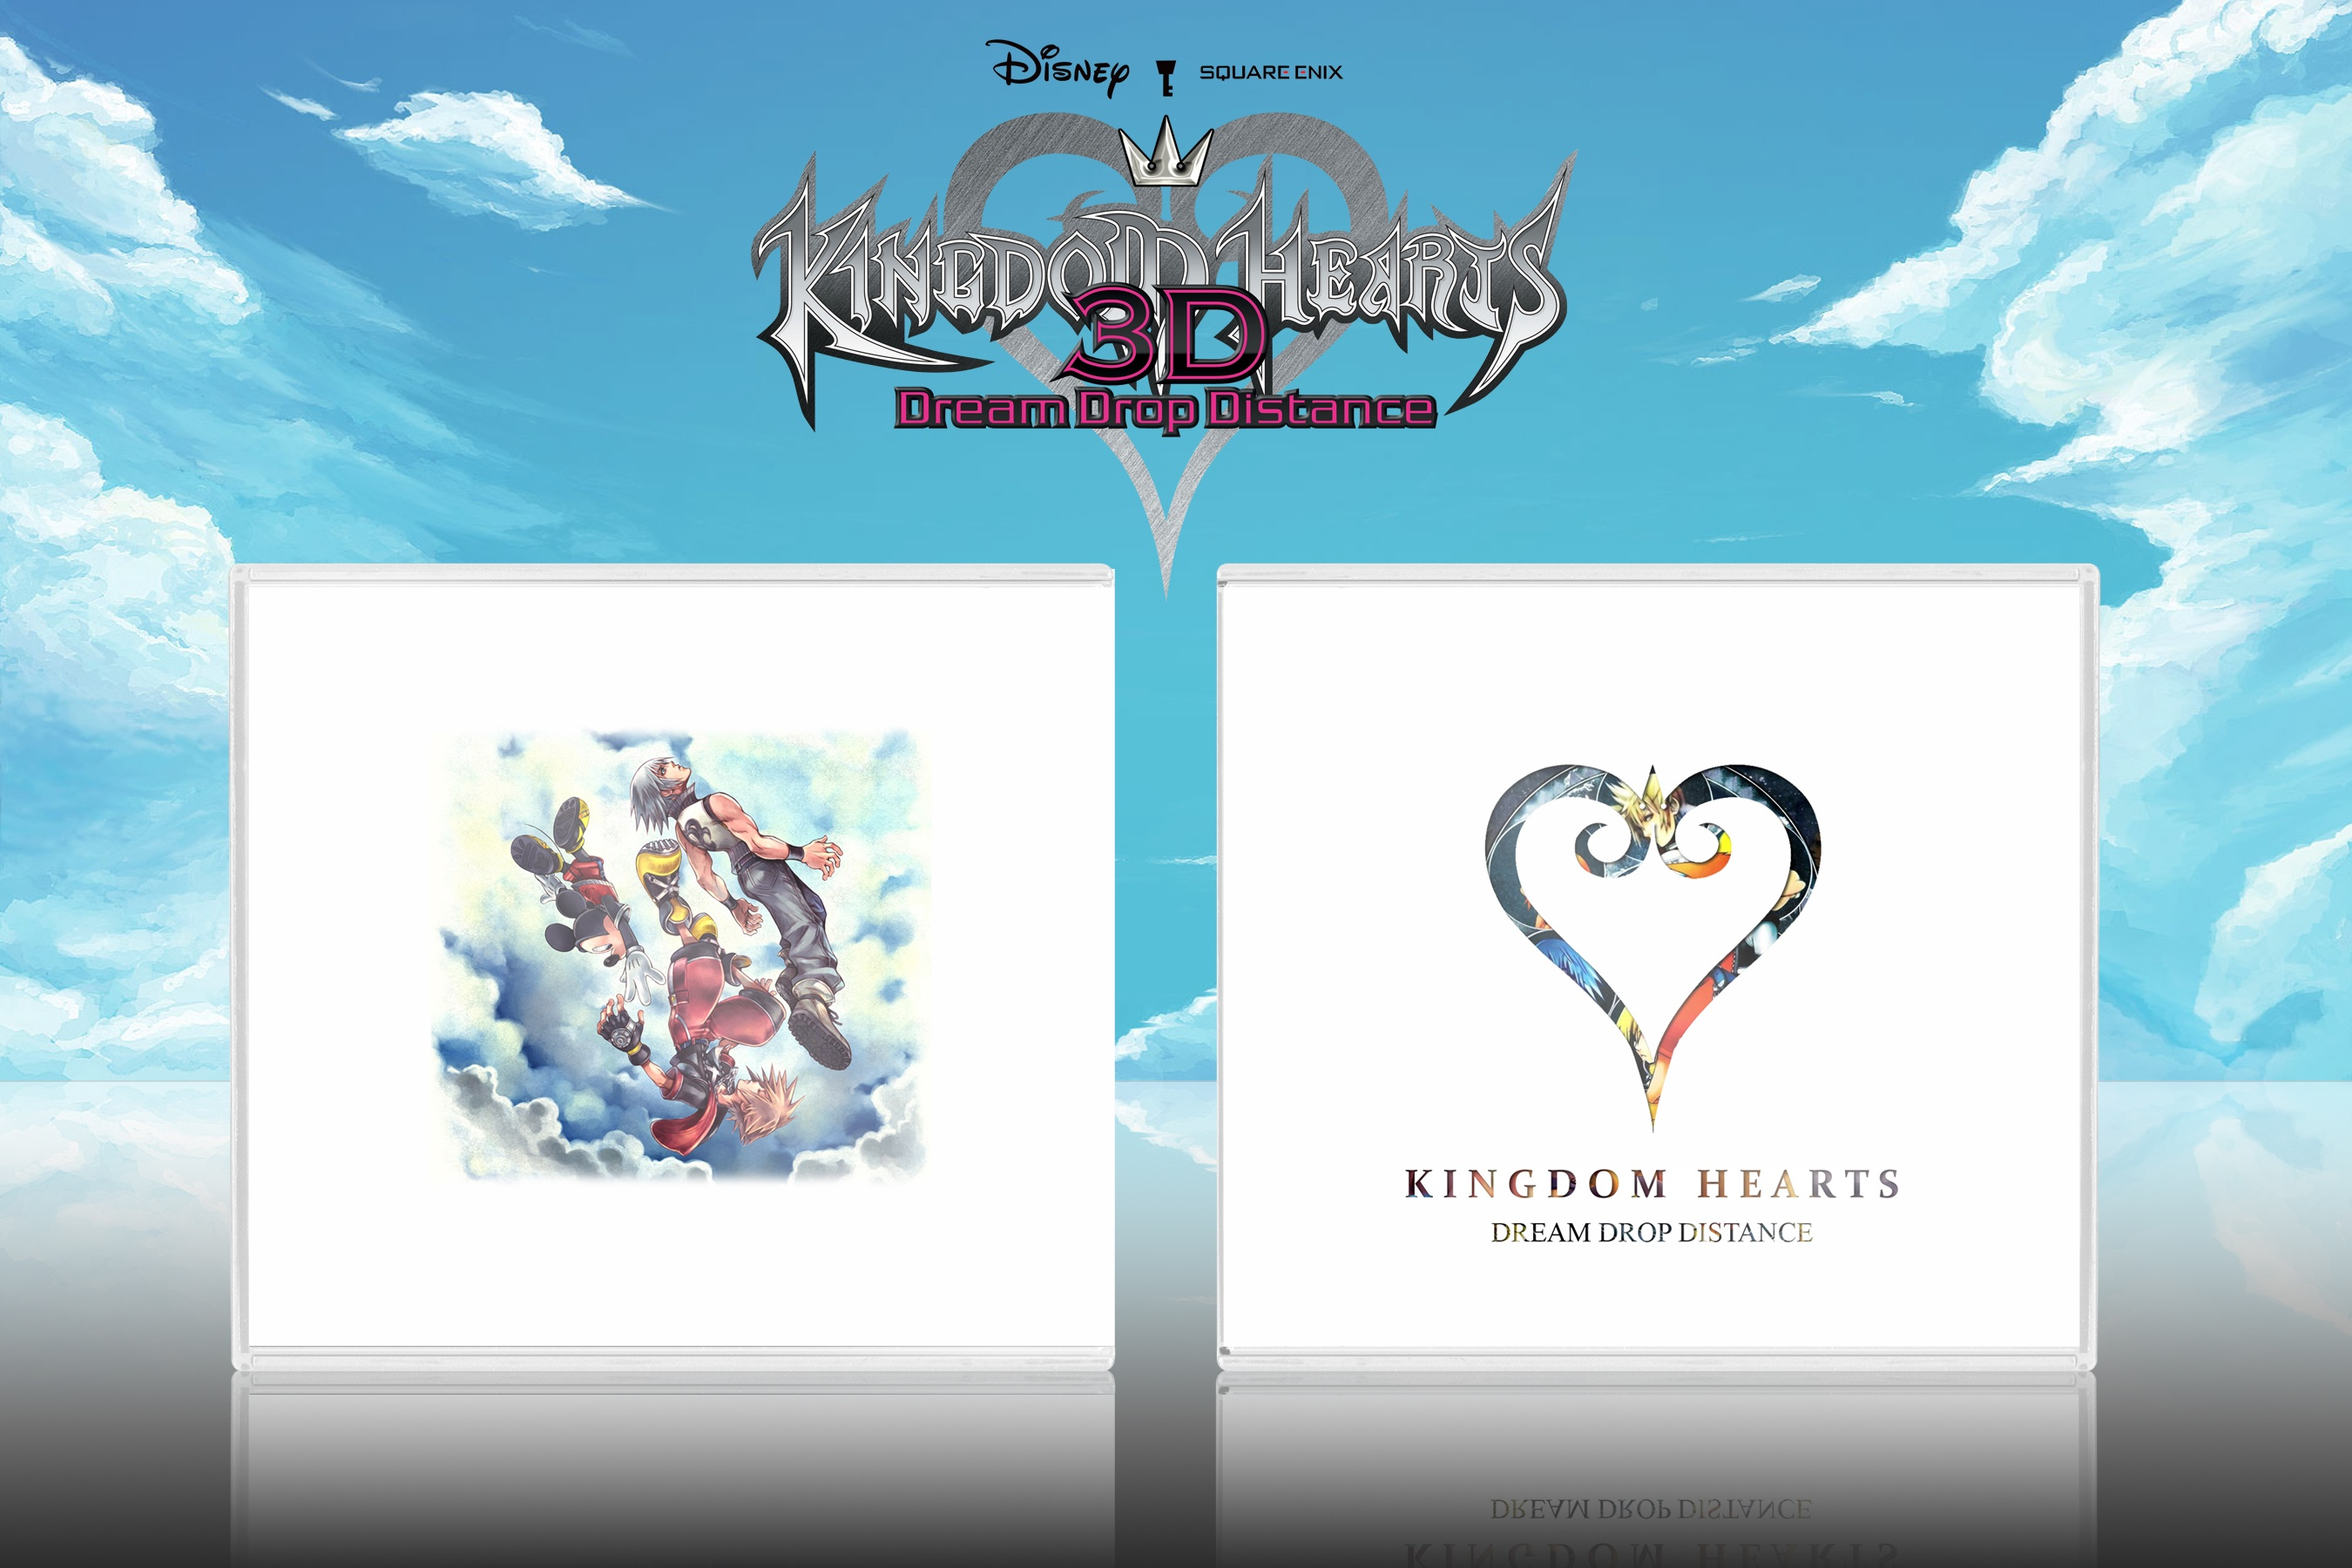 Kingdom Hearts Dream Drop Distance box cover